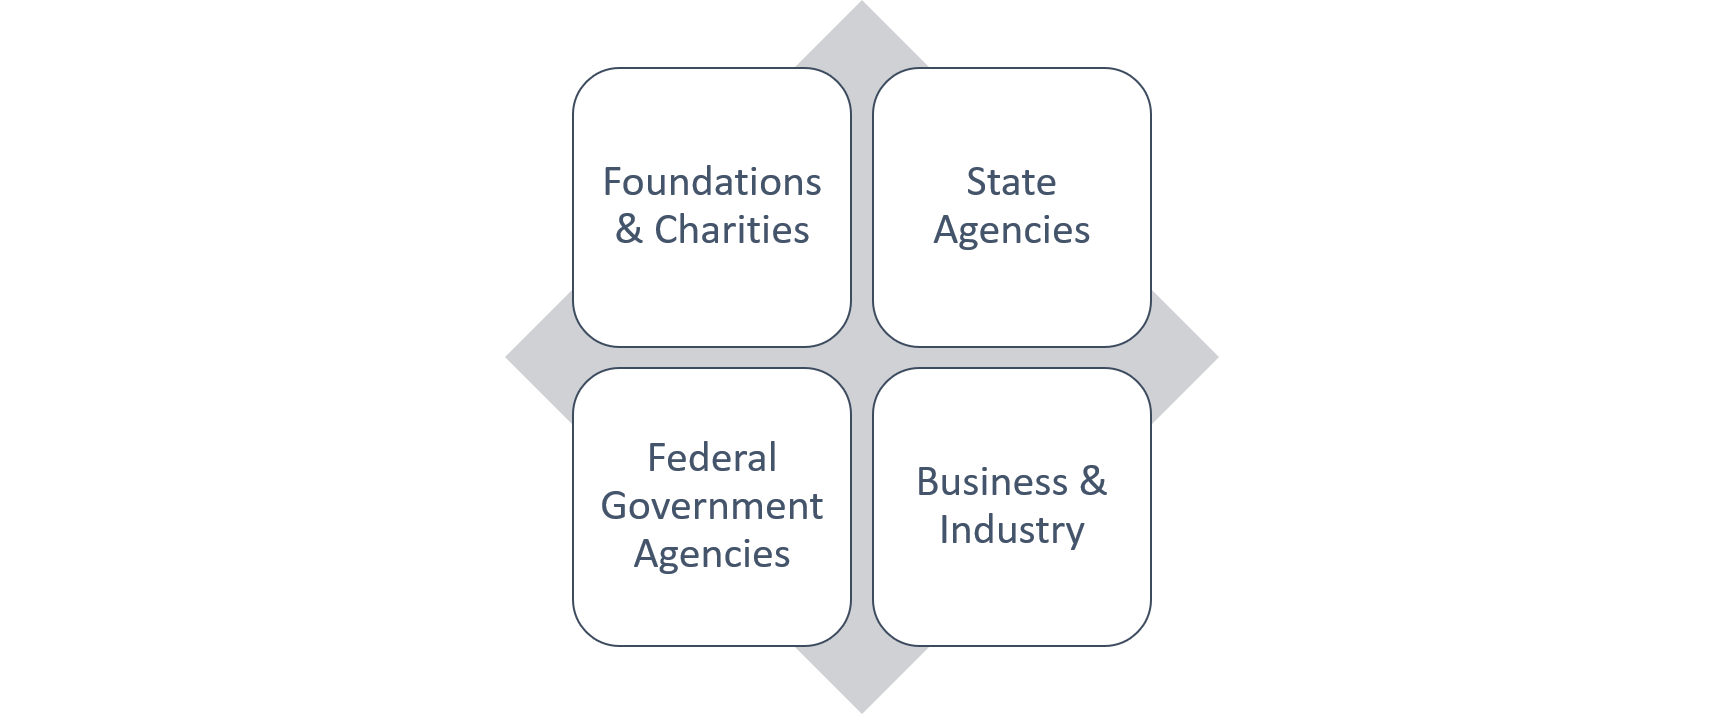 connection between external funding sources including foundations and charities, state agencies, federal government agencies, business and industry